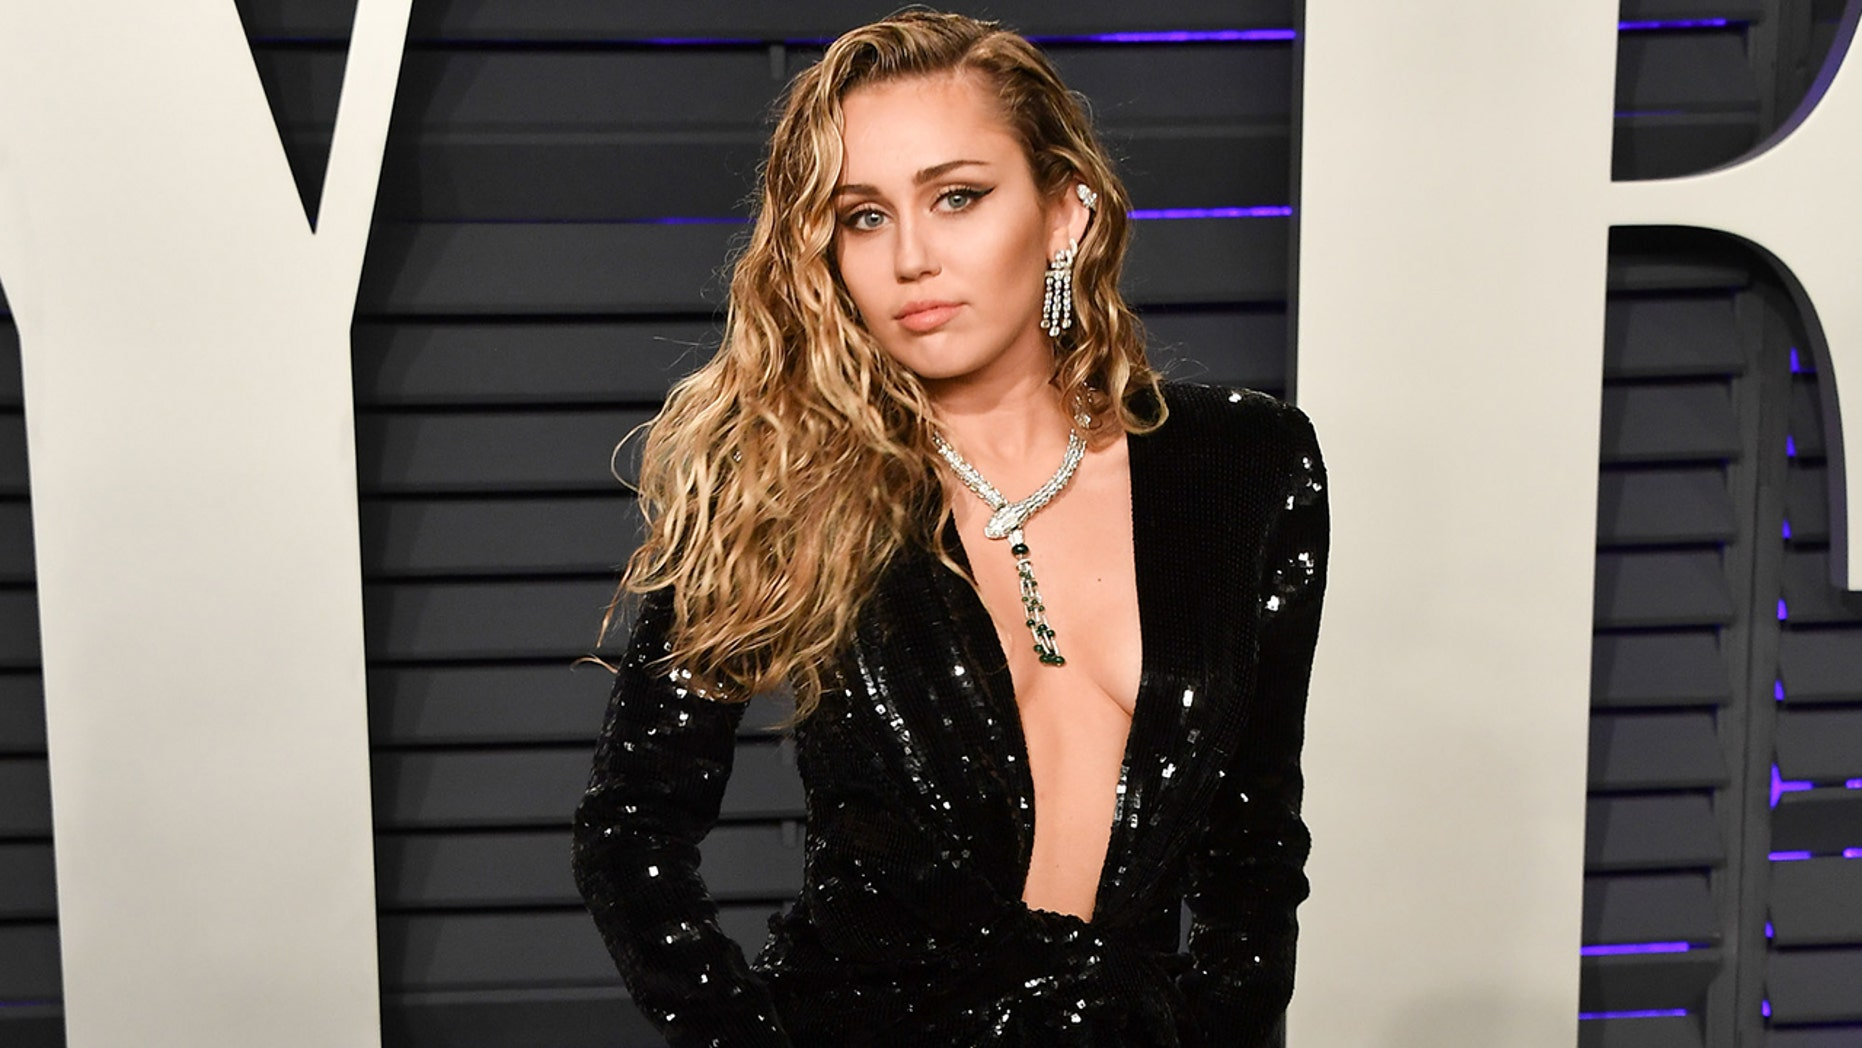 Miley Cyrus: Miley Cyrus Stuns At Vanity Fair Oscars Party In Low-cut